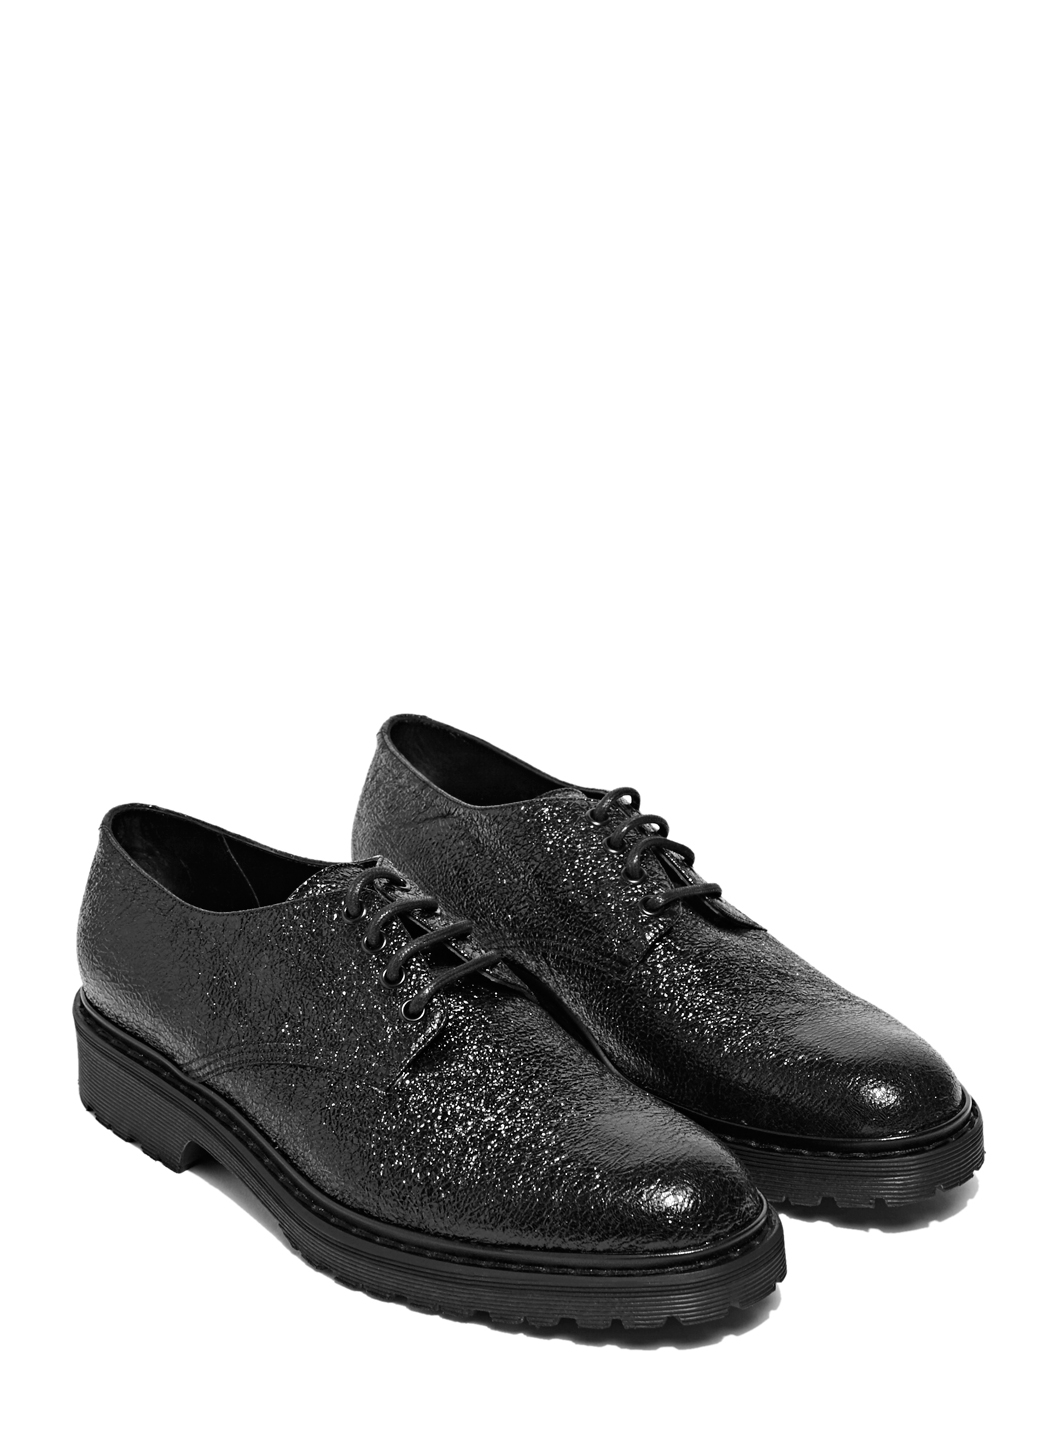 Lyst Saint Laurent Army 20 Derby Shoes In Black For Men